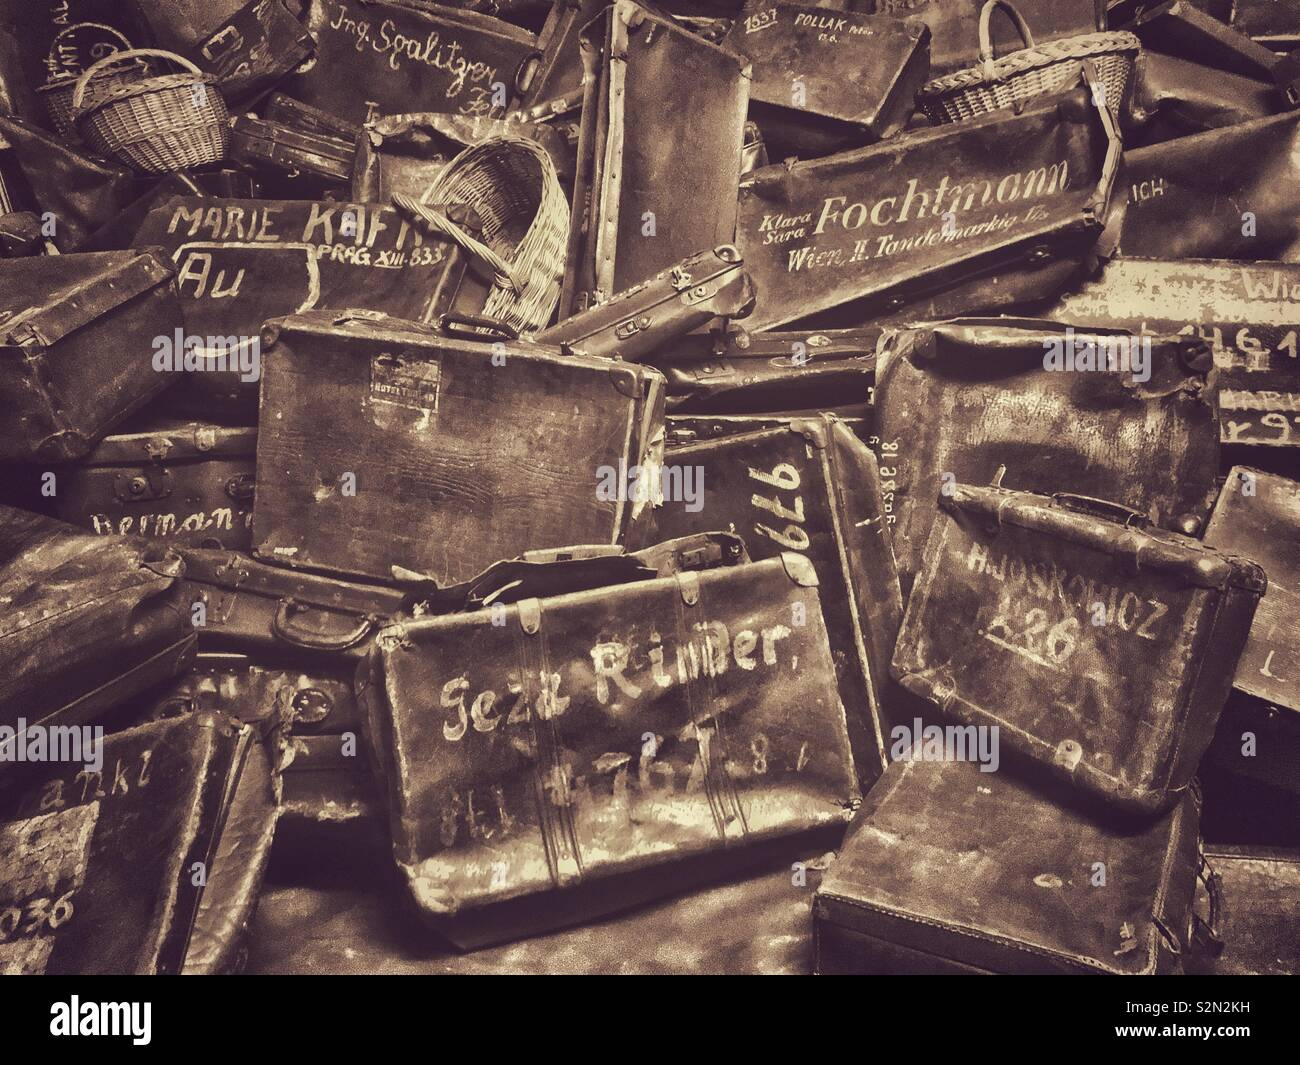 One of the exhibits at the Nazi Auschwitz Concentration Camp in Poland. These suitcases were confiscated from mostly Jewish people who were deported to Auschwitz. Most inmates were executed or gassed. - Stock Image